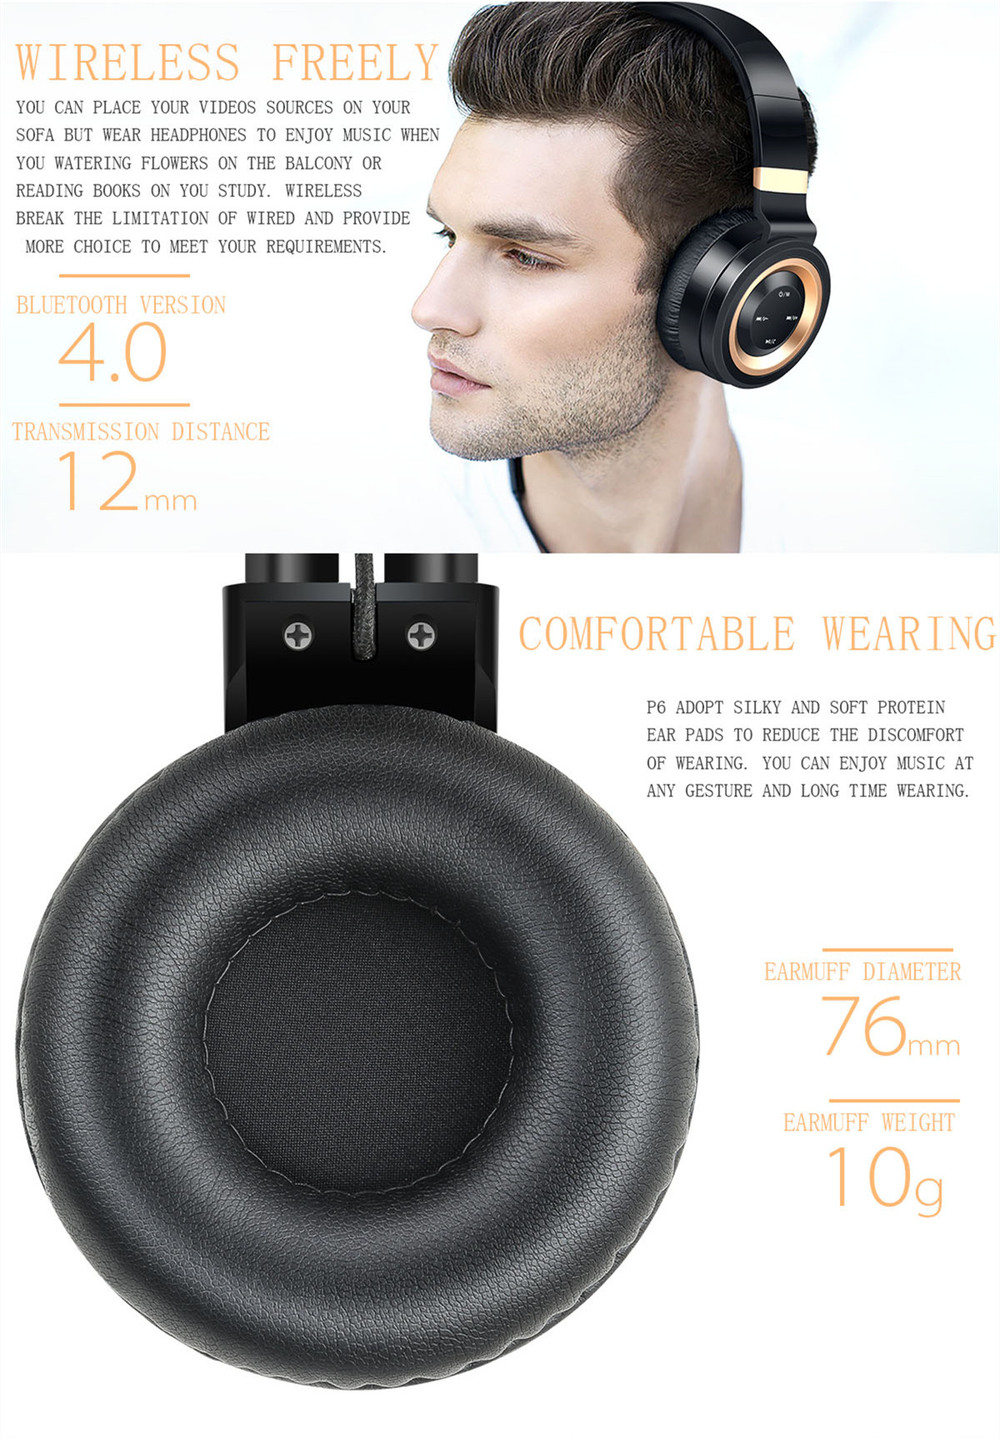 Sound Intone P6 S Bluetooth Headsets Stereo wireless Headphones With MIC Support FM Radio TF Card Earphone For iPhone Xiaomi PC 4